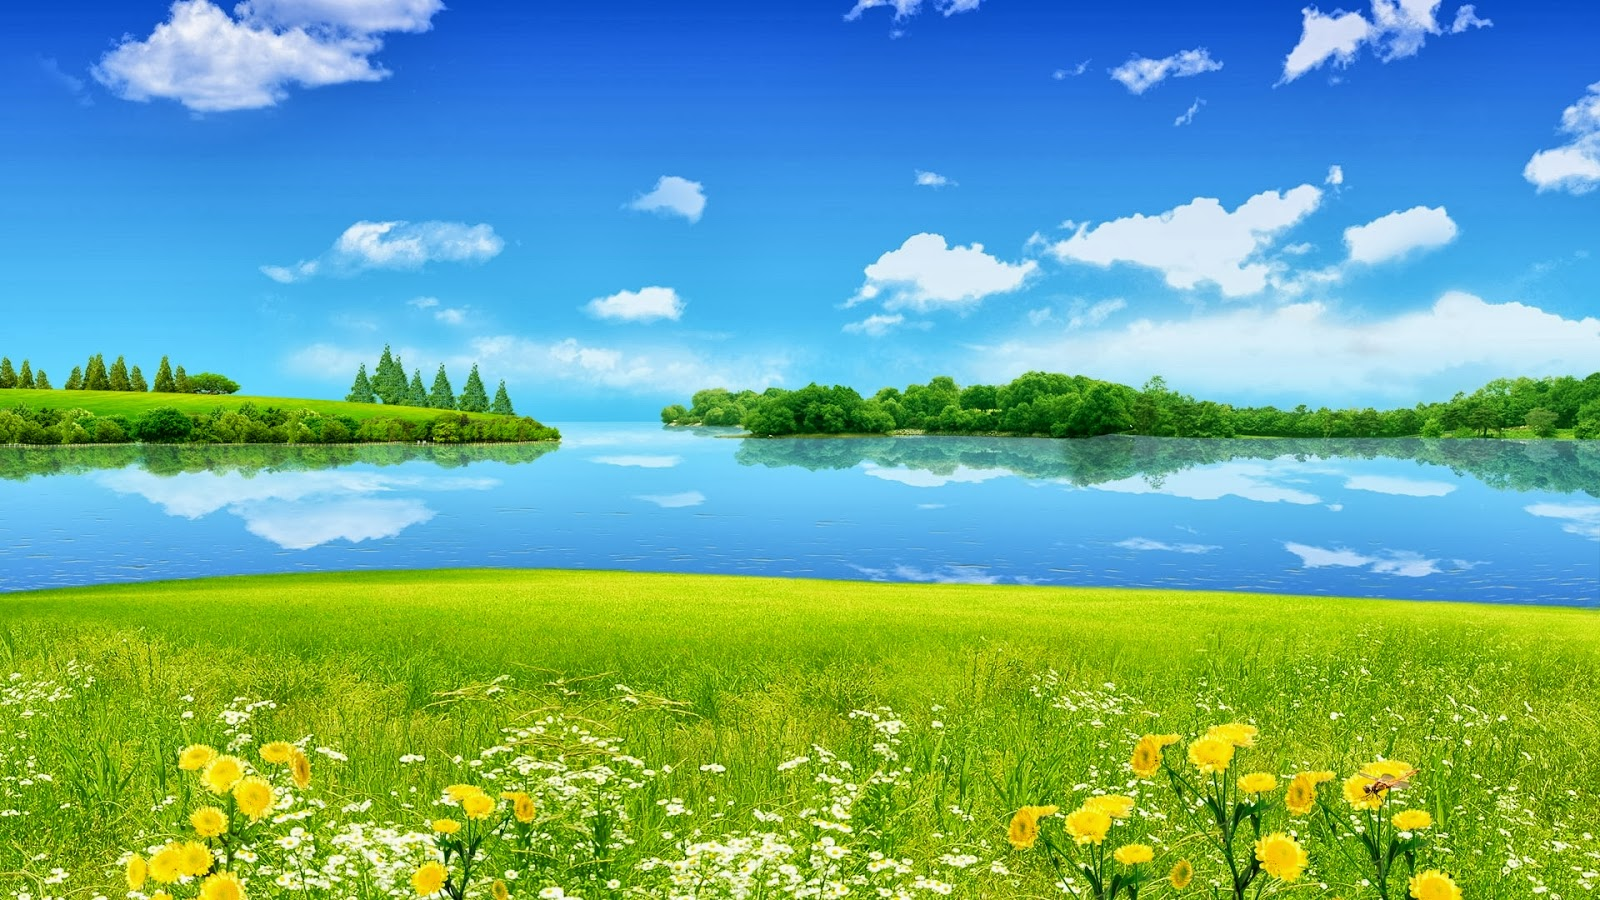 Full HD Nature Wallpapers Downloads For Laptop PC Desktop 1600x900